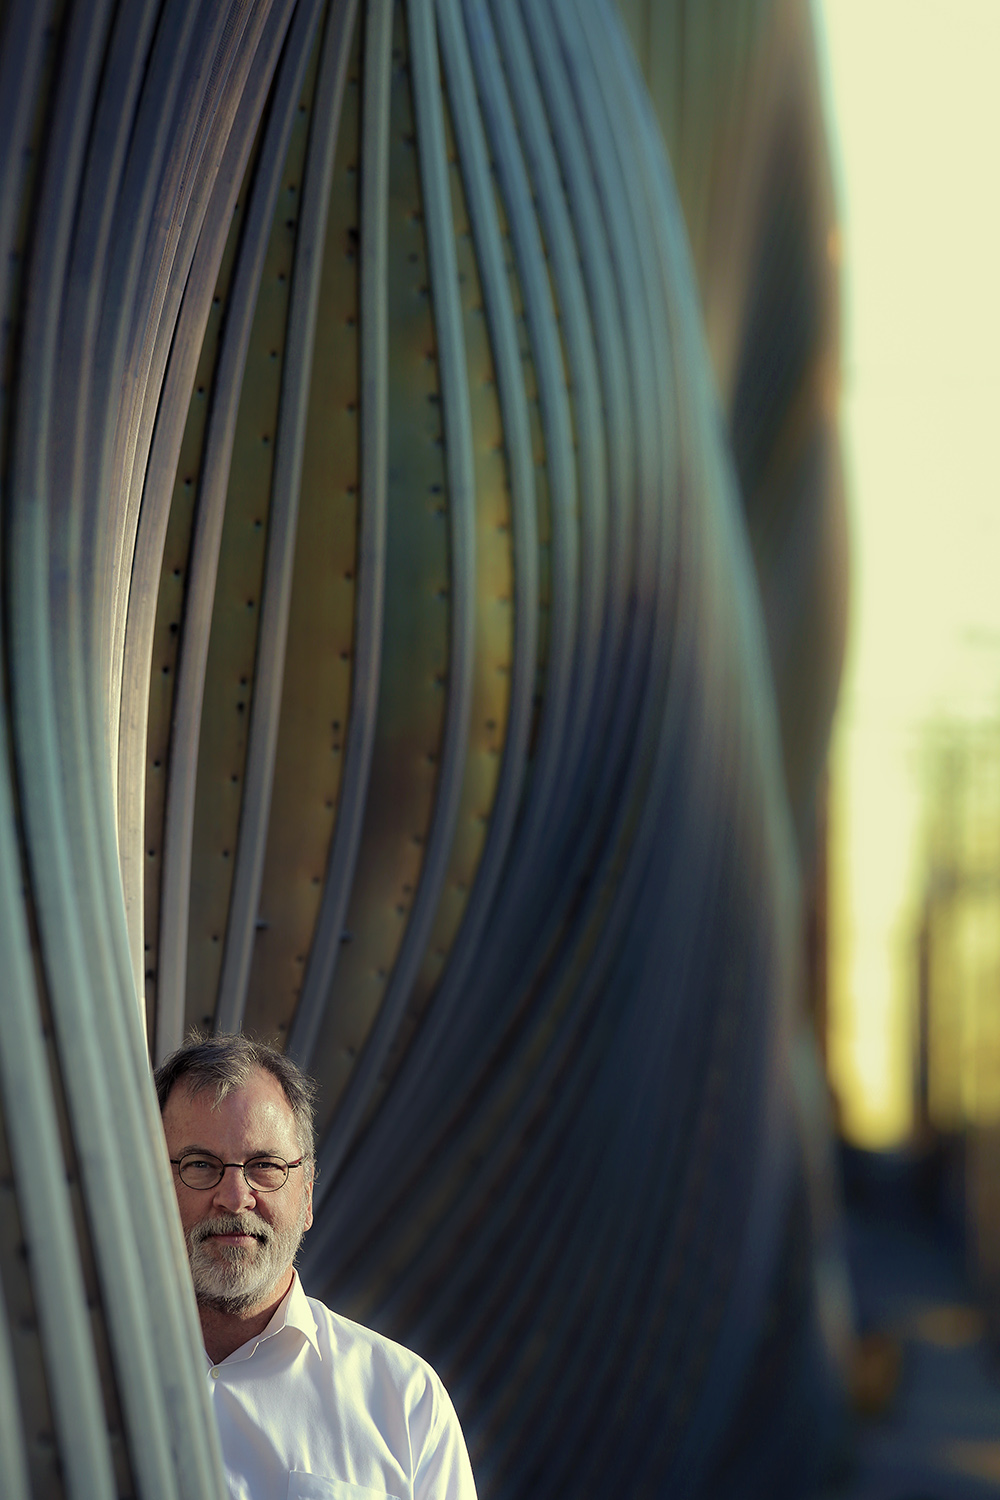 Portrait of Bill Zahner, President and CEO of Zahner architectural metal company in Kansas City